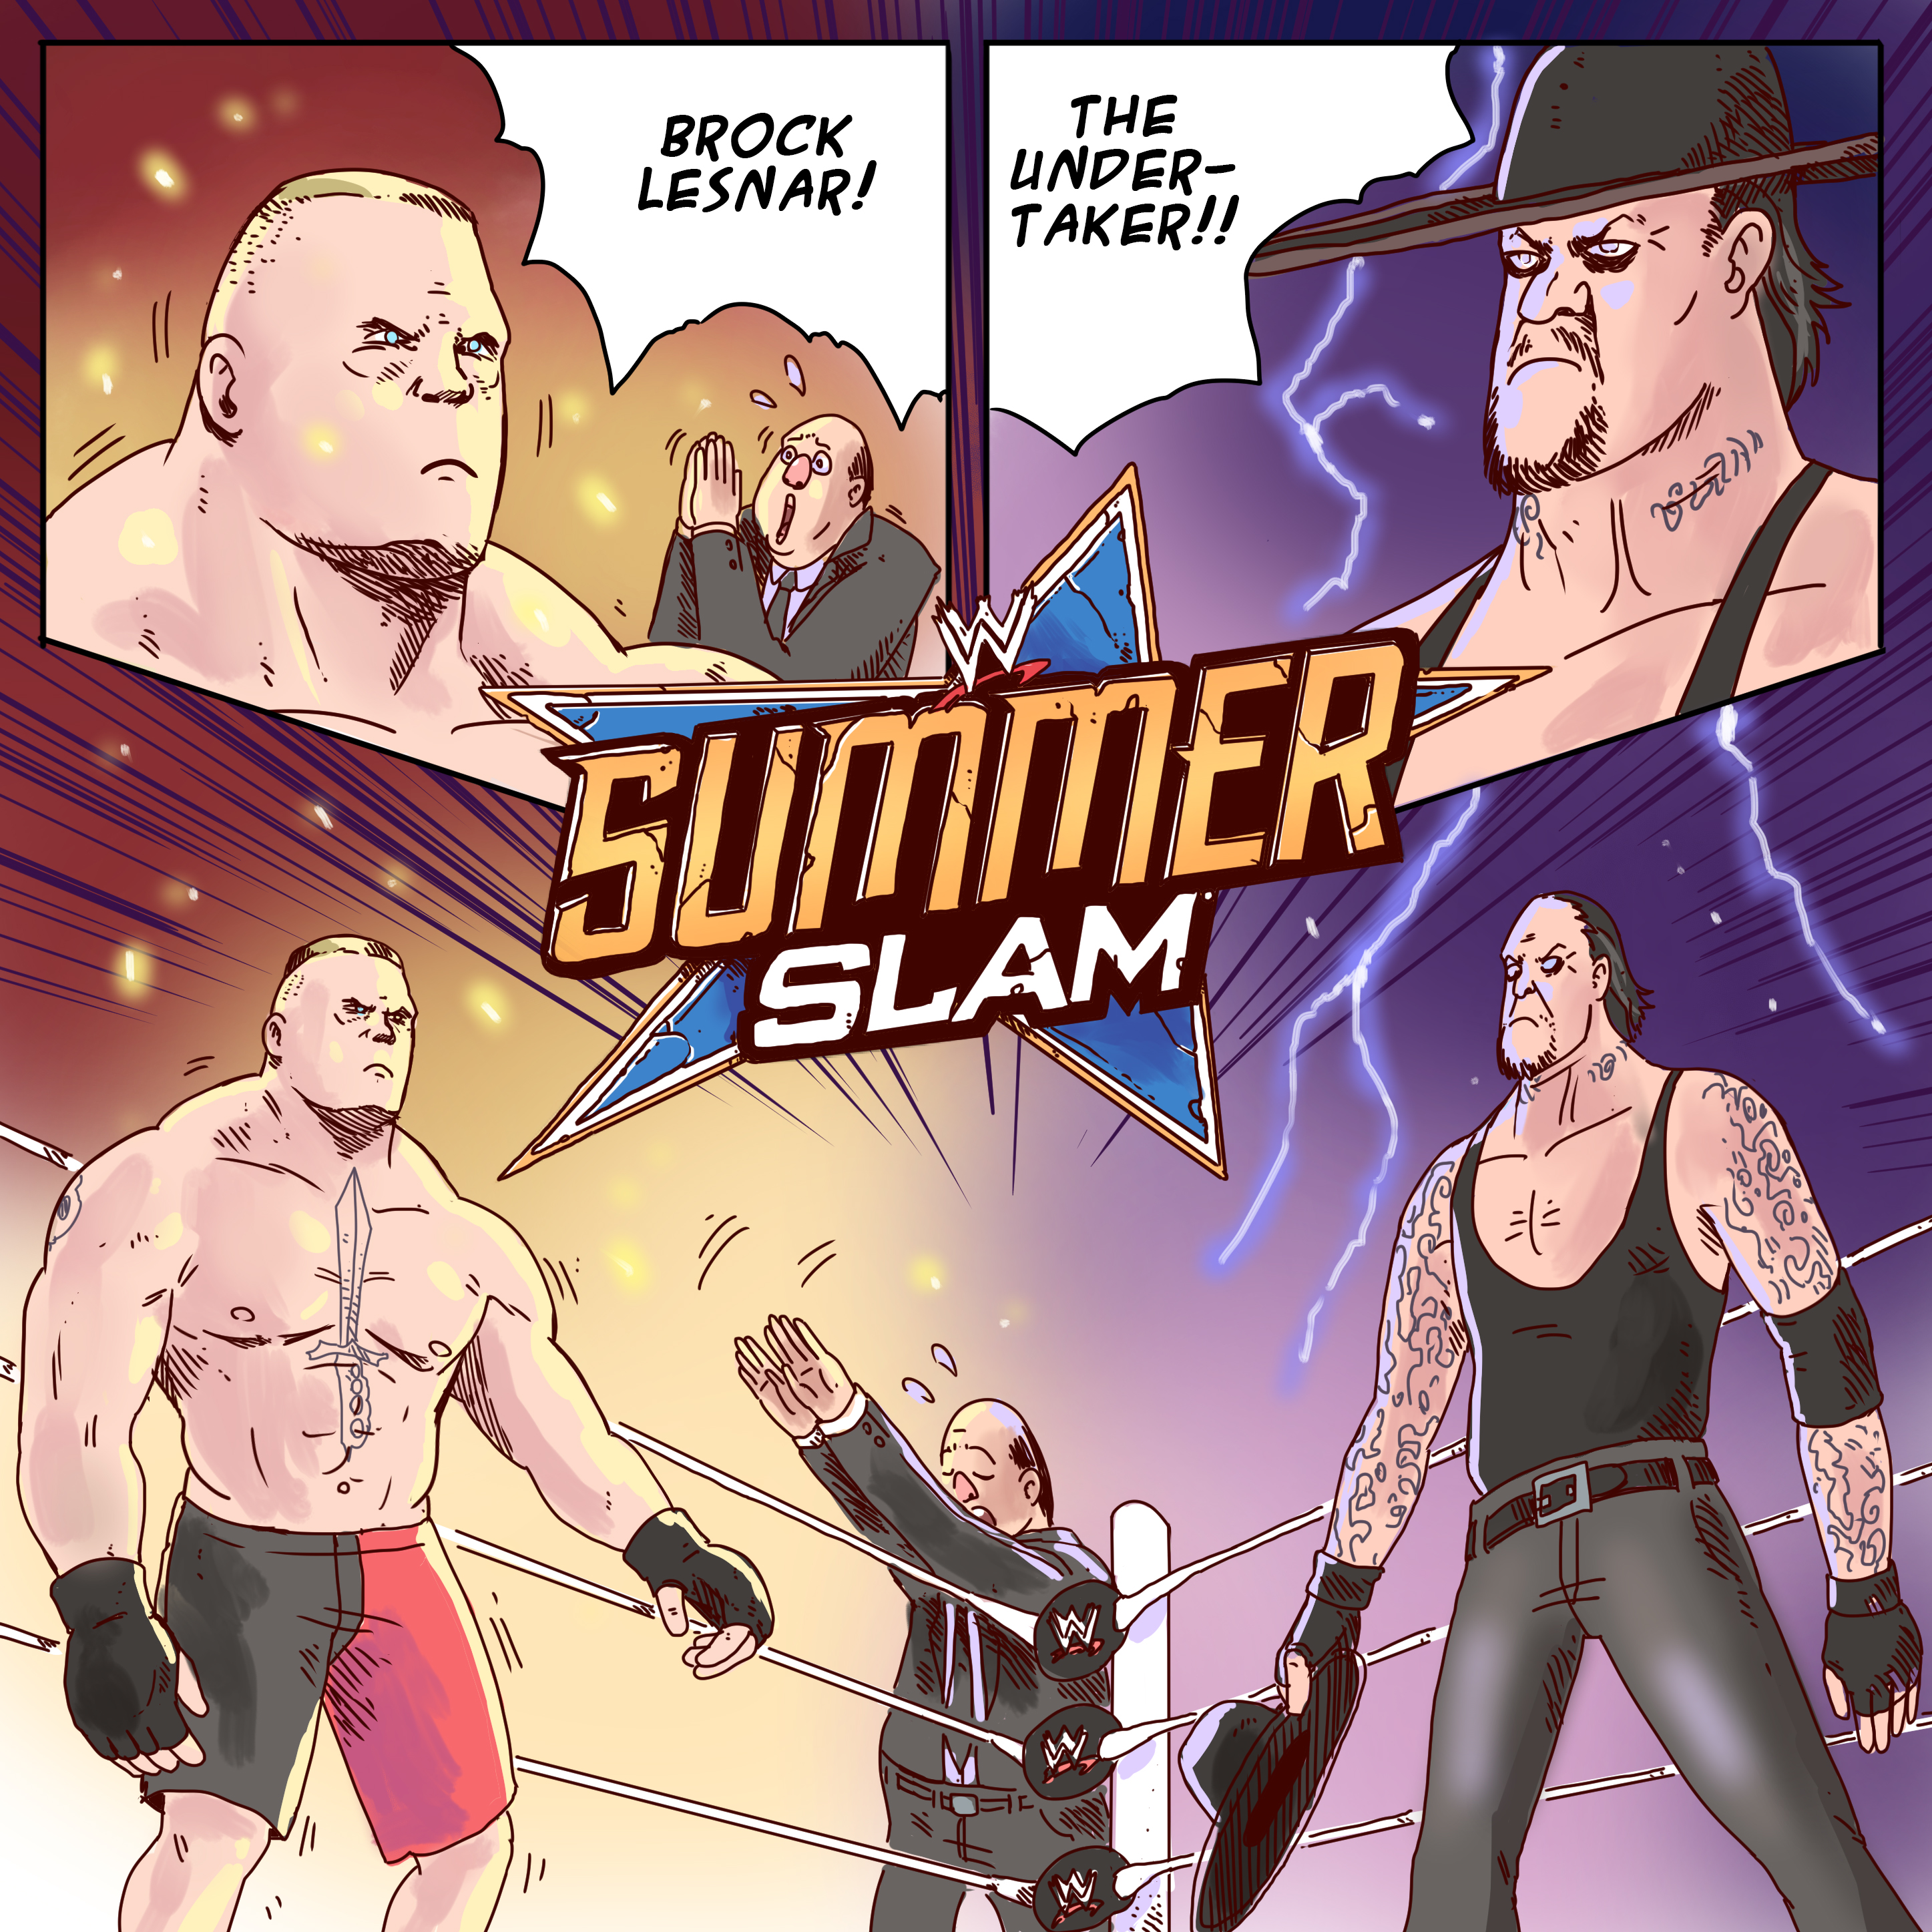 SUMMERSLAM BROCK LESNAR VS. THE UNDERTAKER